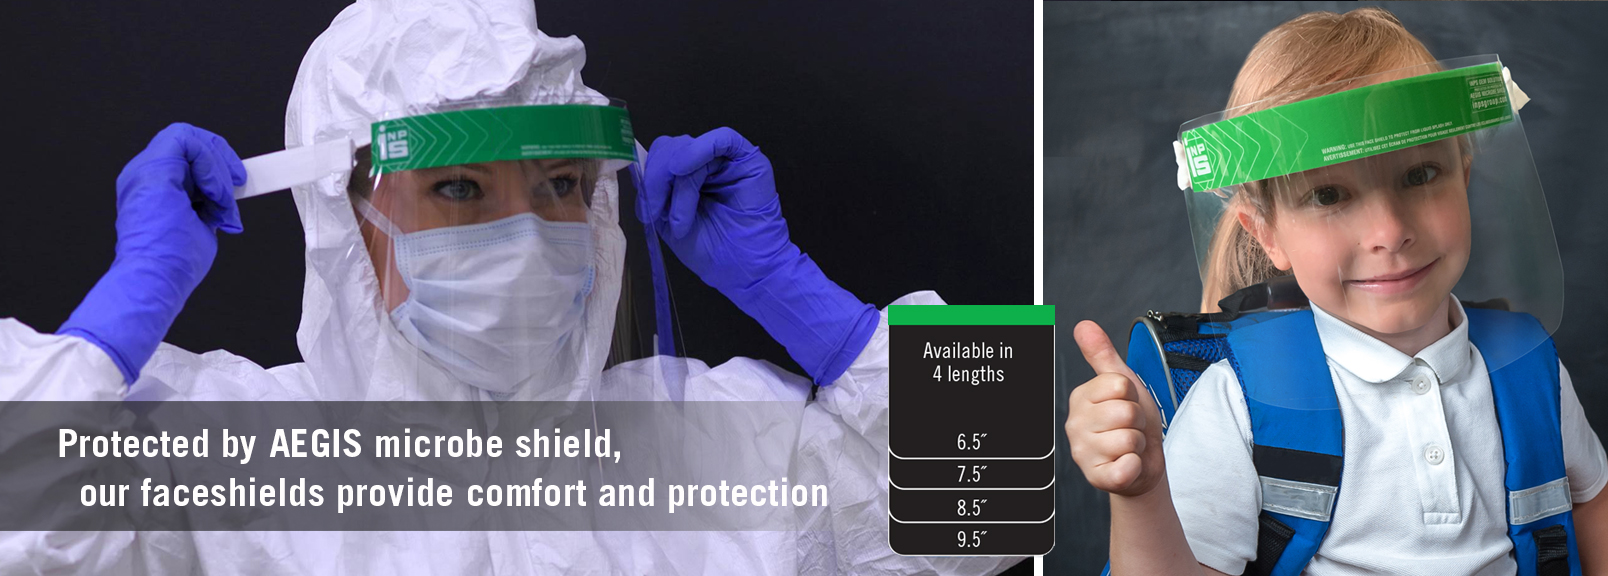 face shields covid-19 antimicrobial faceshields safety